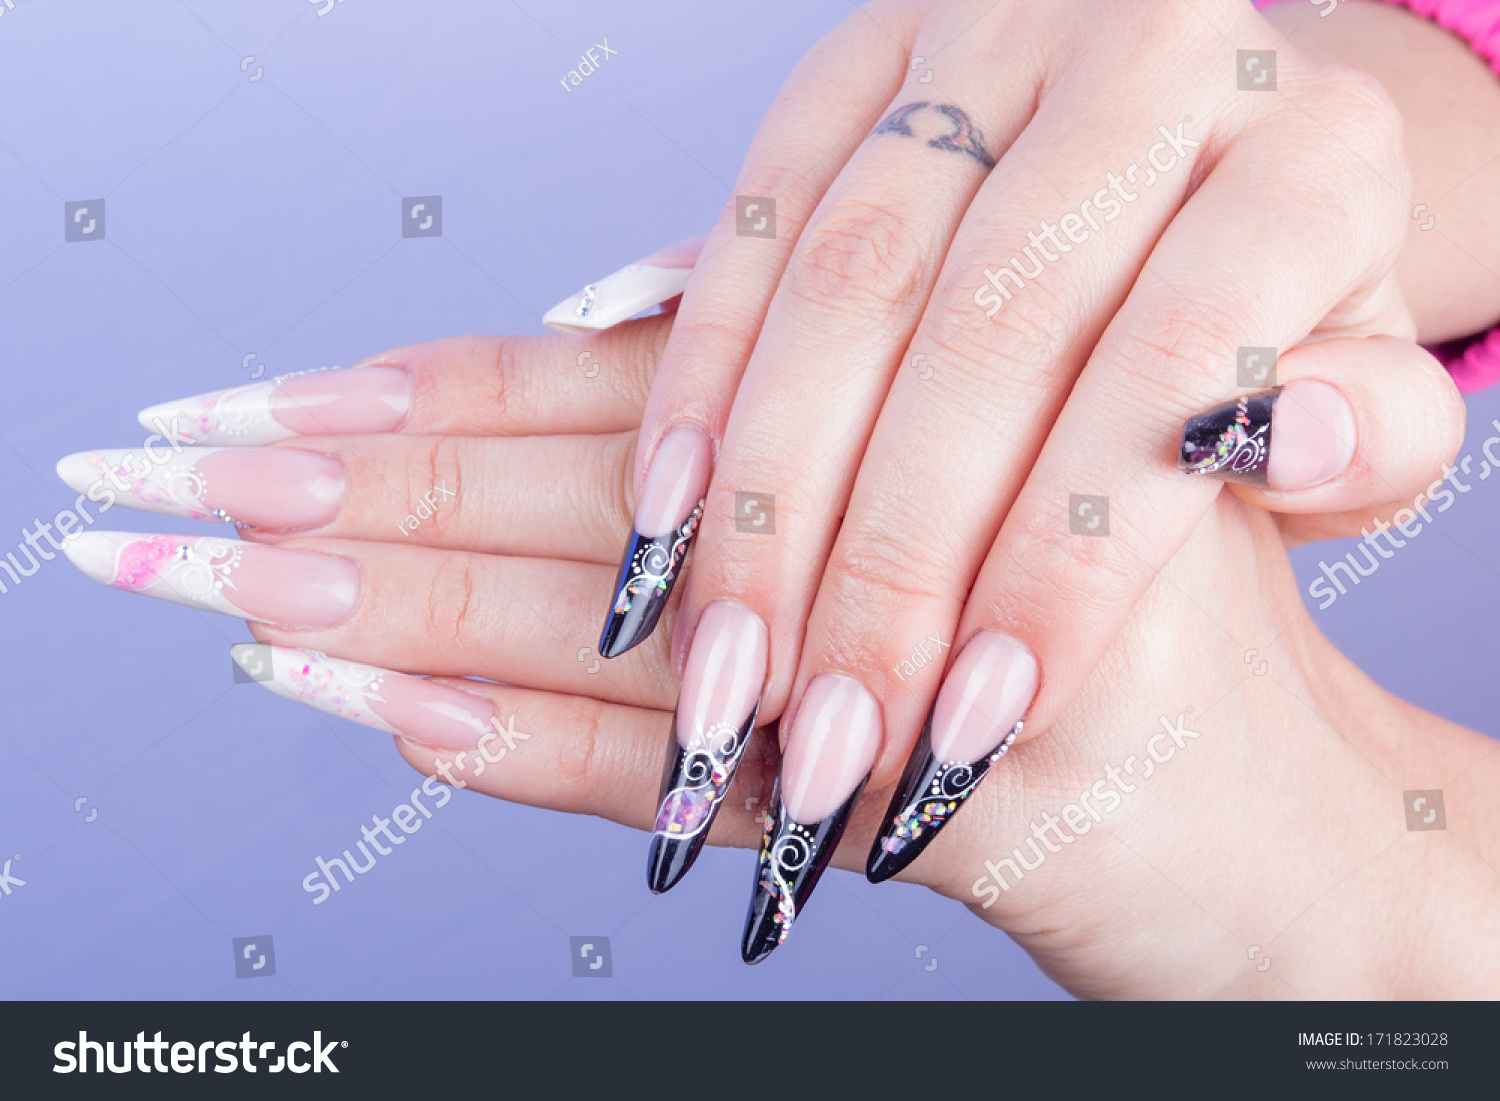 Woman Hand Dark Pink Nails Isolated Stock Photo 171823028 - Shutterstock